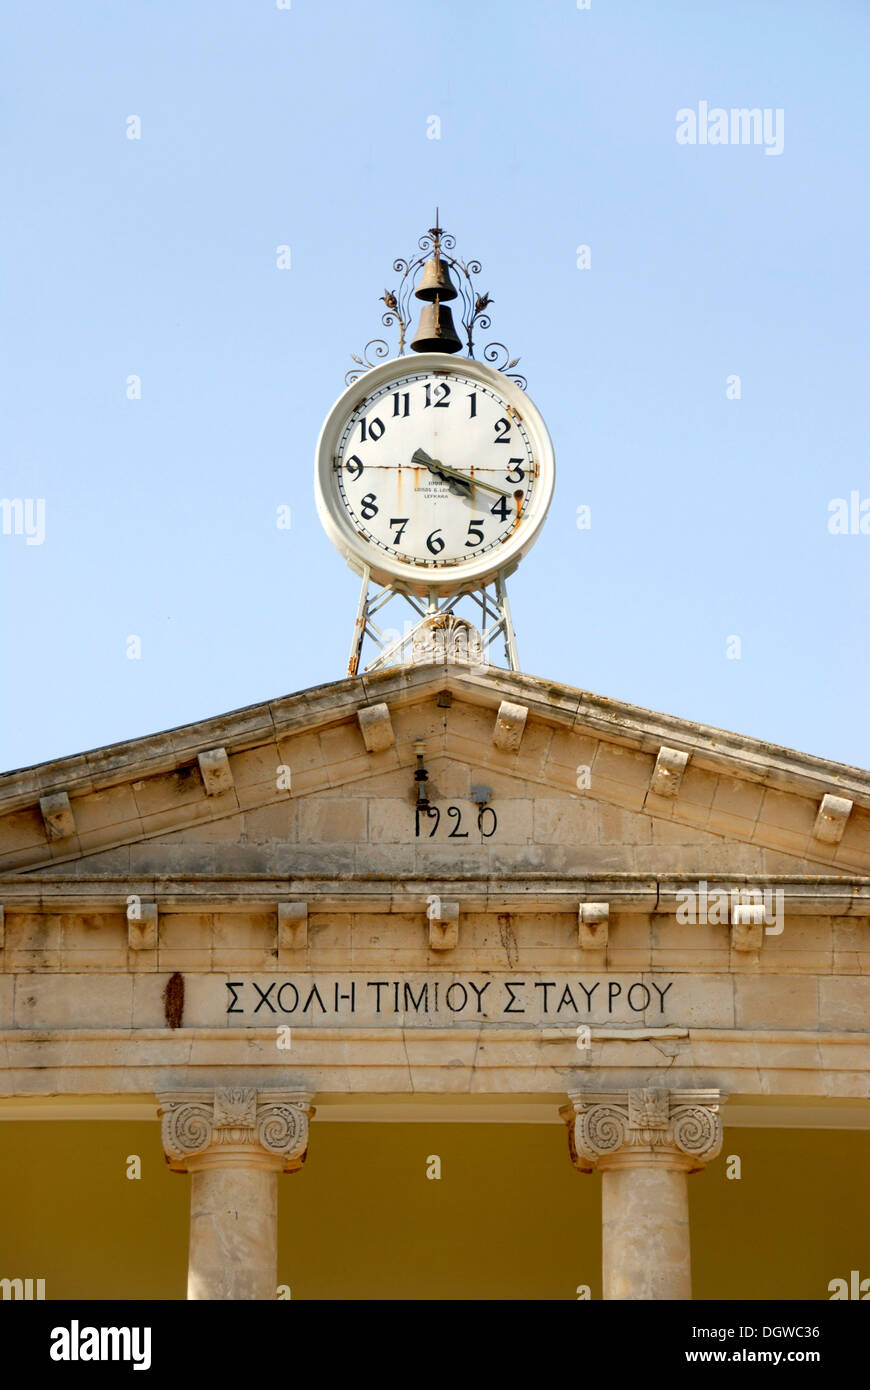 Clock on roof, Neoclassicism, old Ttwn hall, Pano Lefkara, Southern Cyprus, Republic of Cyprus, Mediterranean, Europe - Stock Image